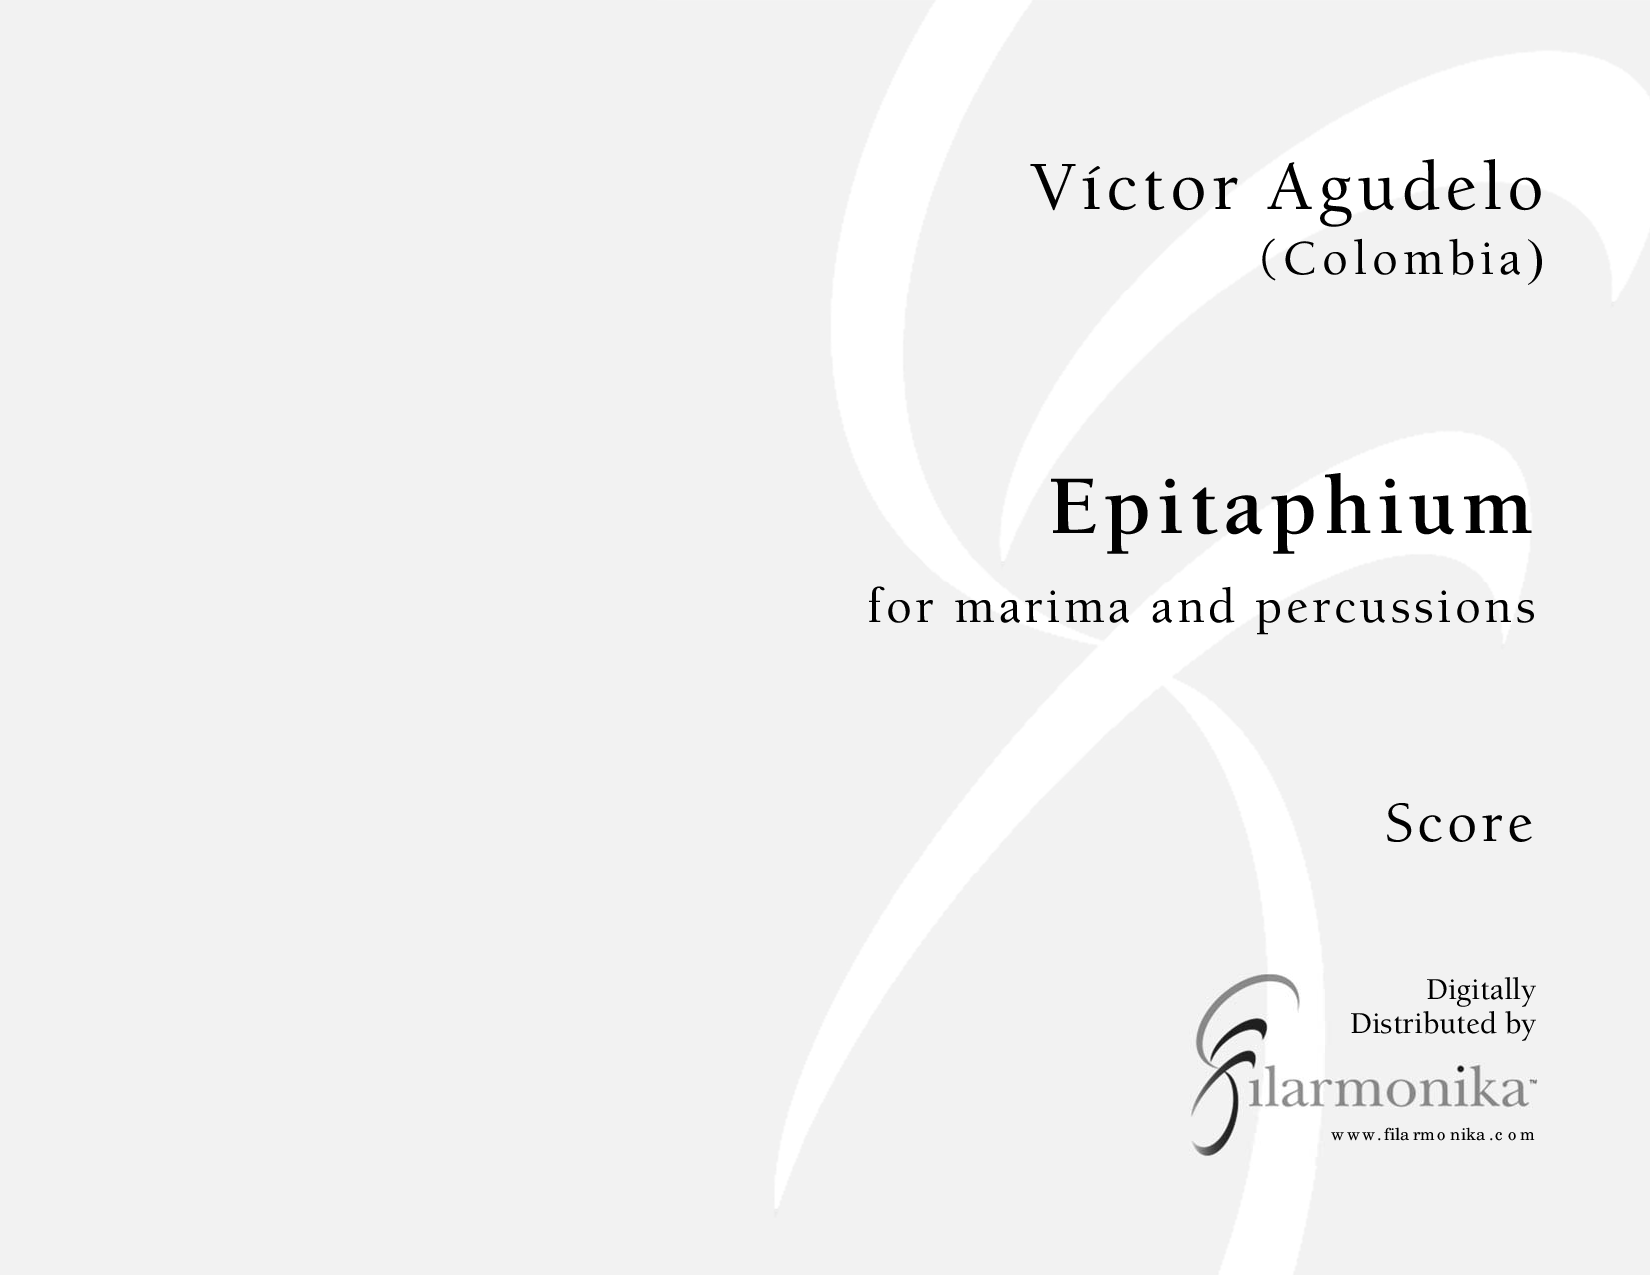 Epitaphium, for marimba and percussion